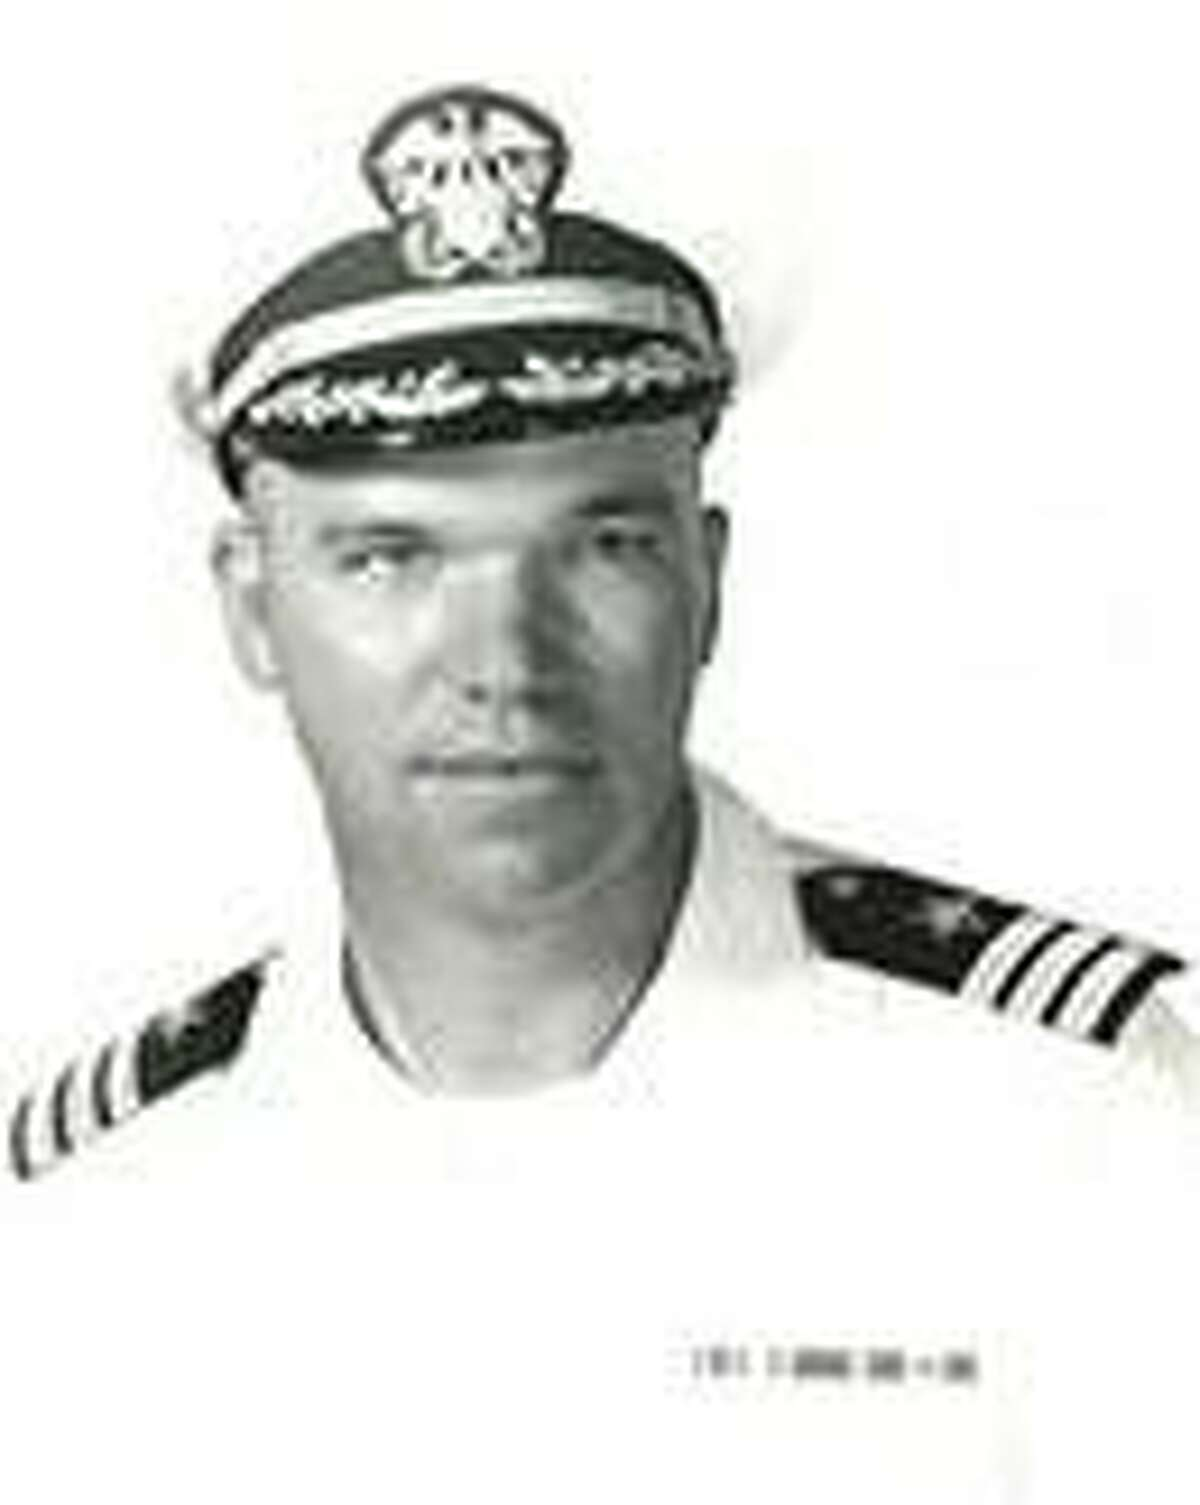 Jack O. Walker was part of the Navy team that decoded intercepted enemy messages.